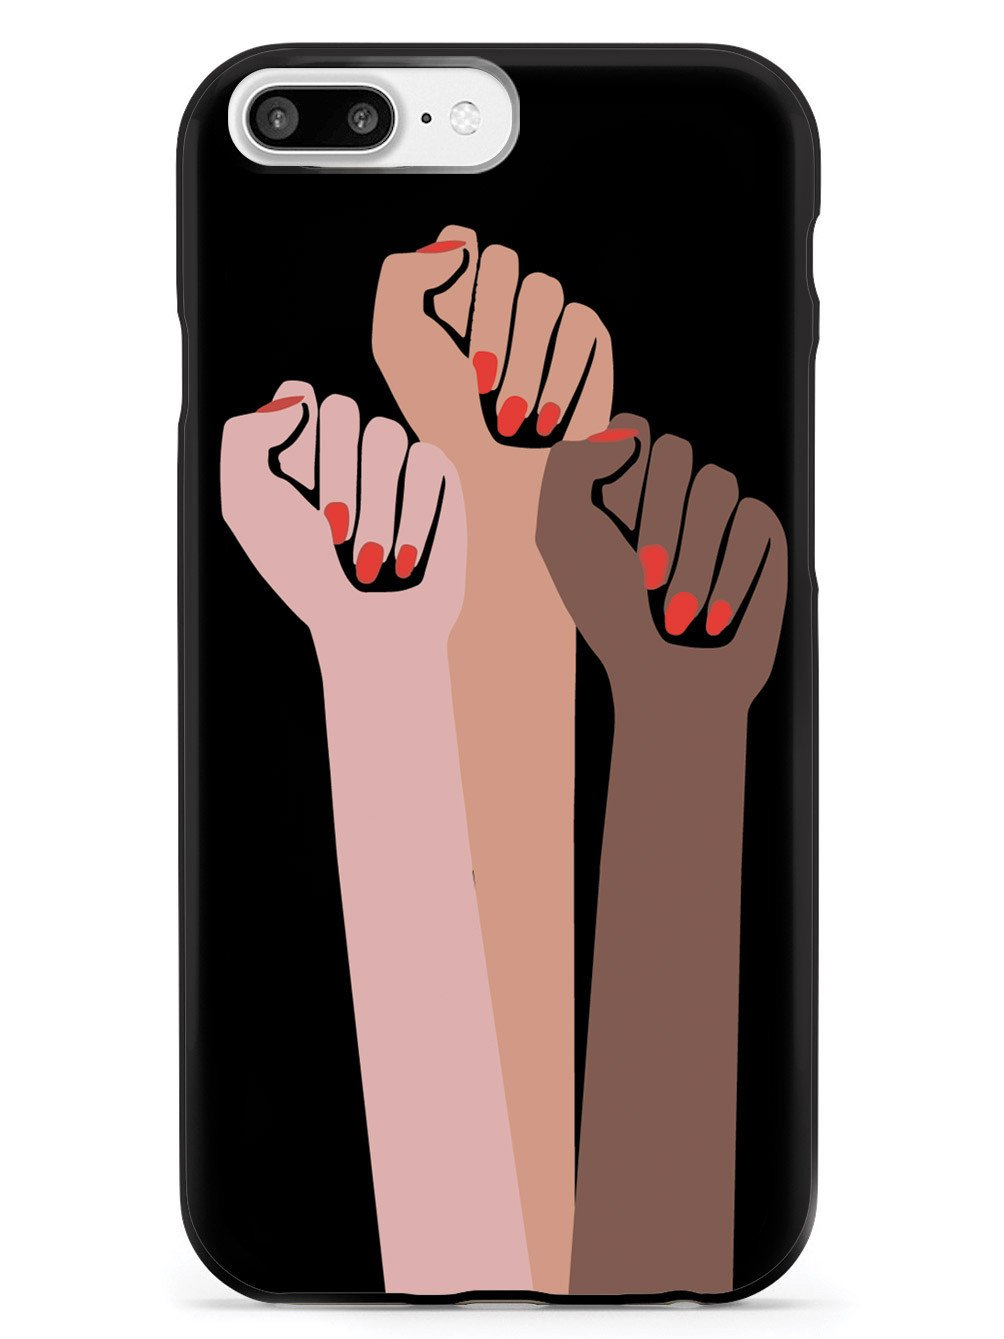 Women Unite! Women's March Solidarity Design - Black Case - pipercleo.com